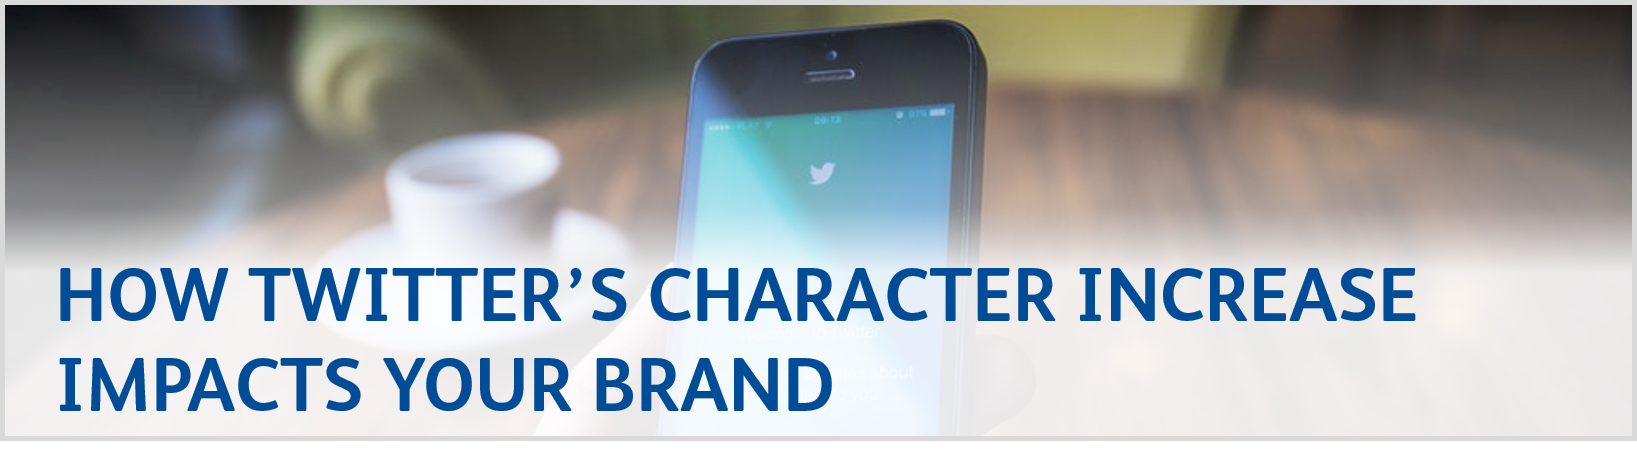 How Twitter's Character Increase Impacts Your Brand